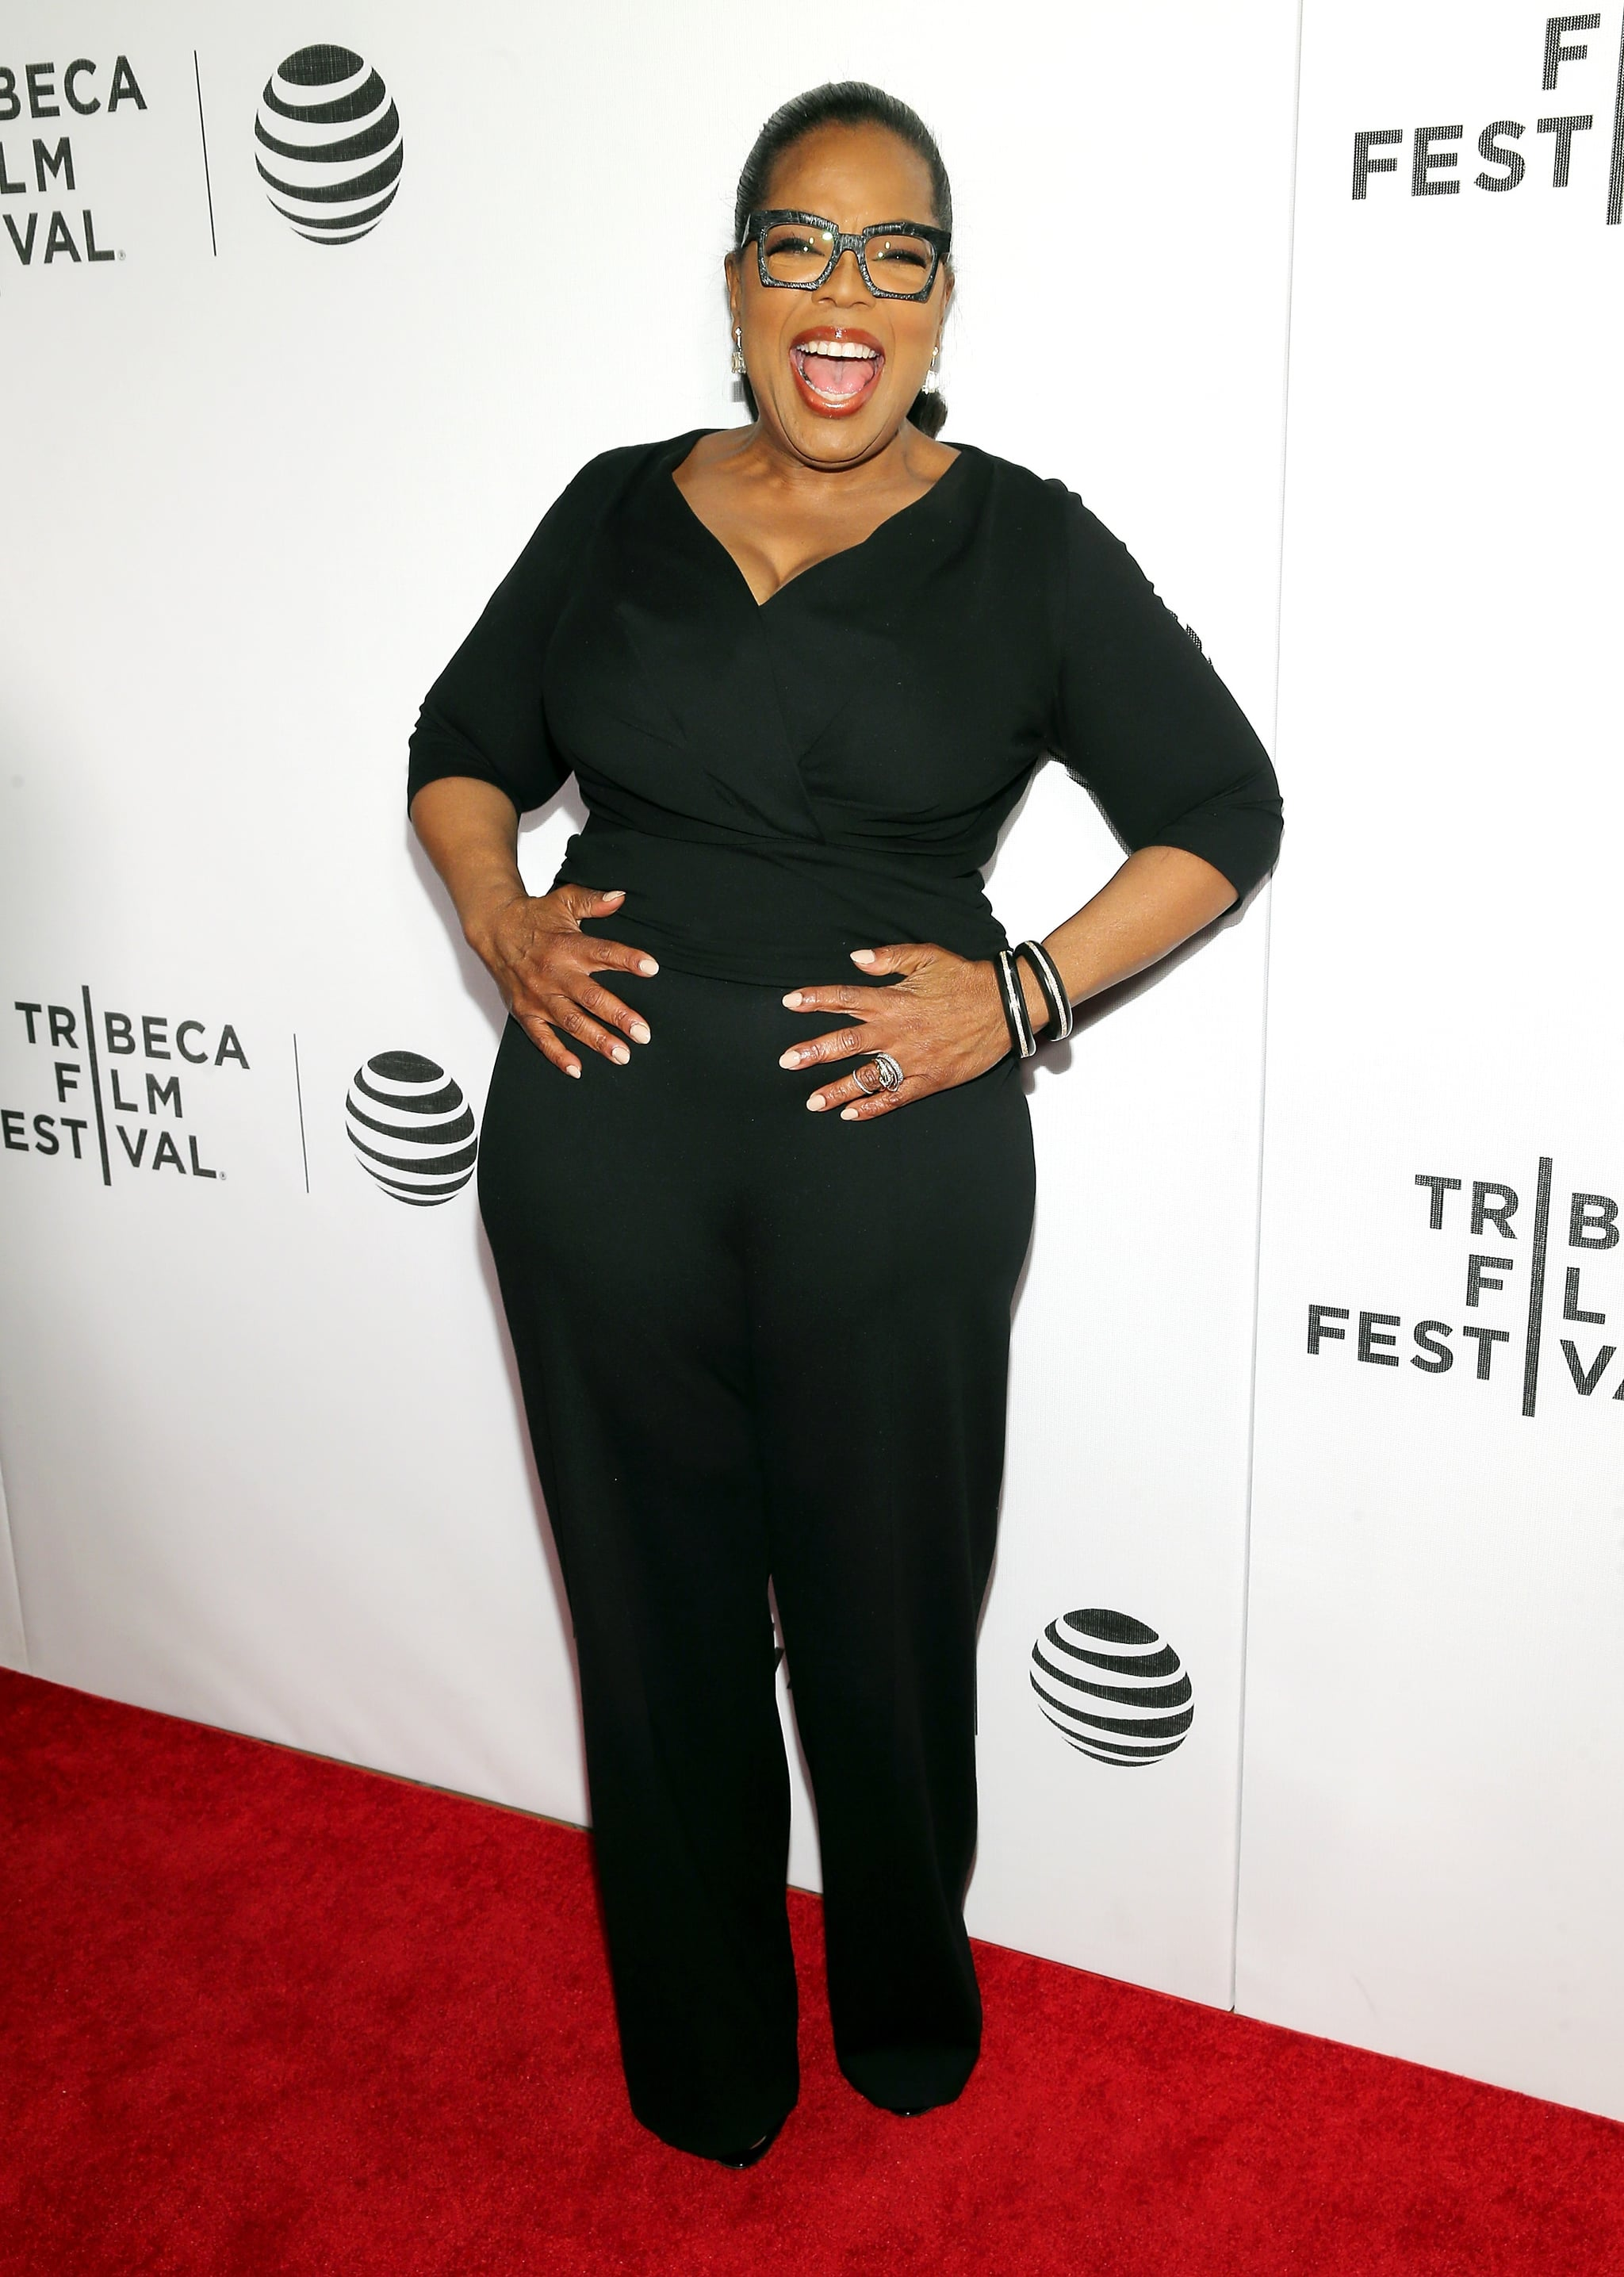 oprah winfrey weight watchers diet tip fitness